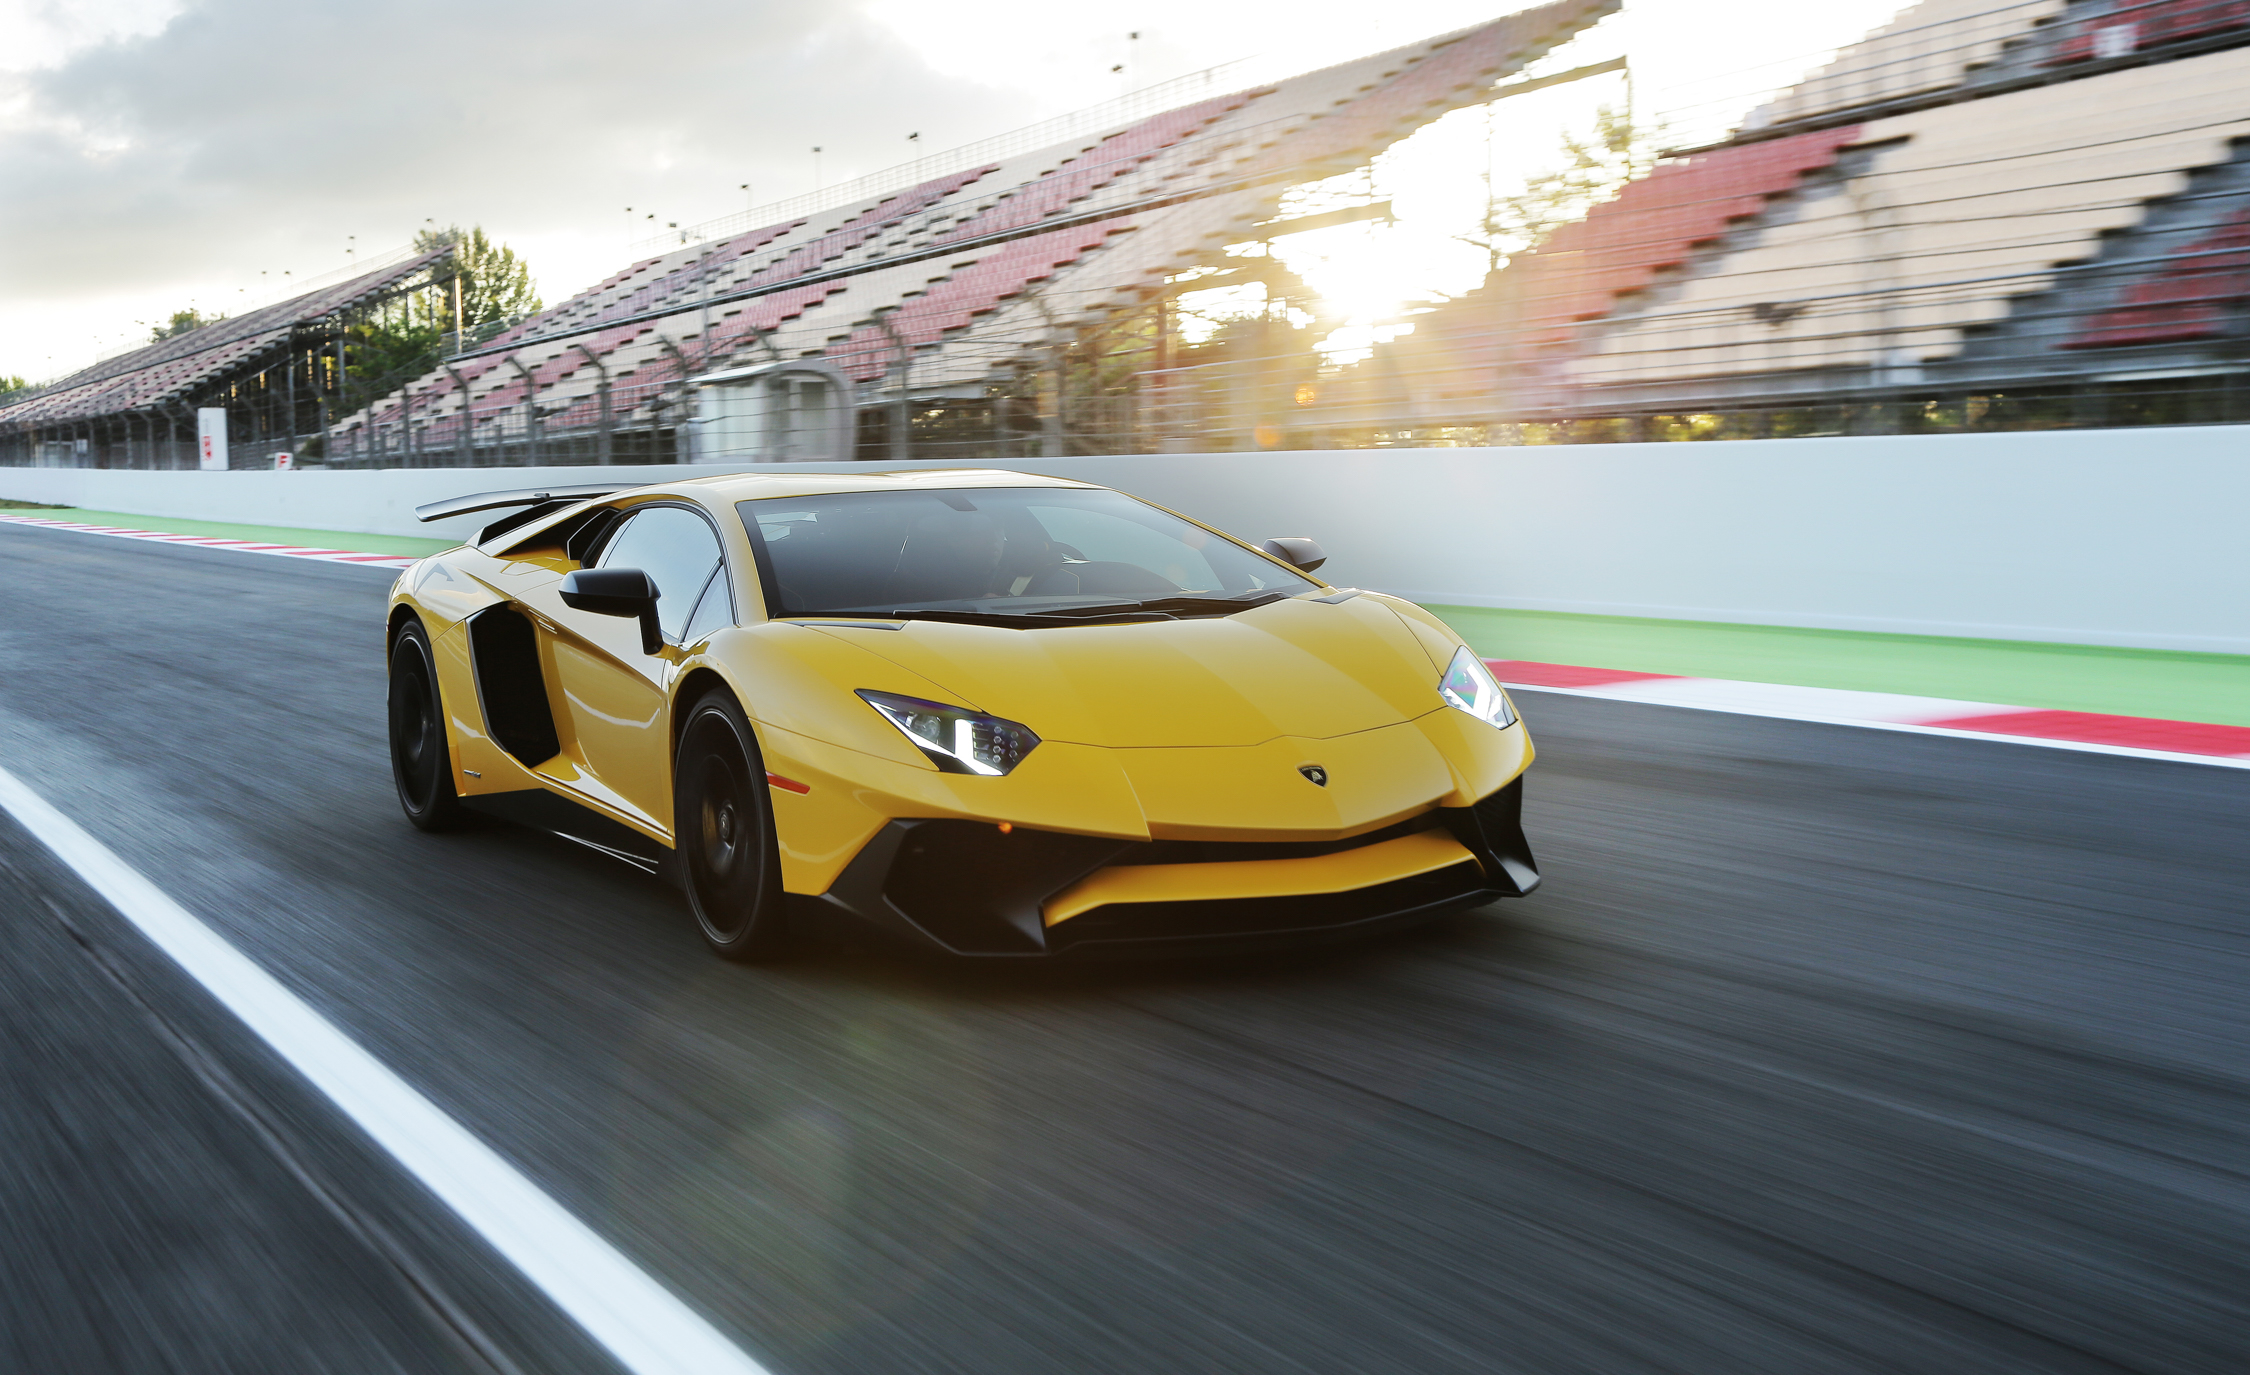 2016 Lamborghini Aventador LP750 4 SV (Photo 32 of 48)